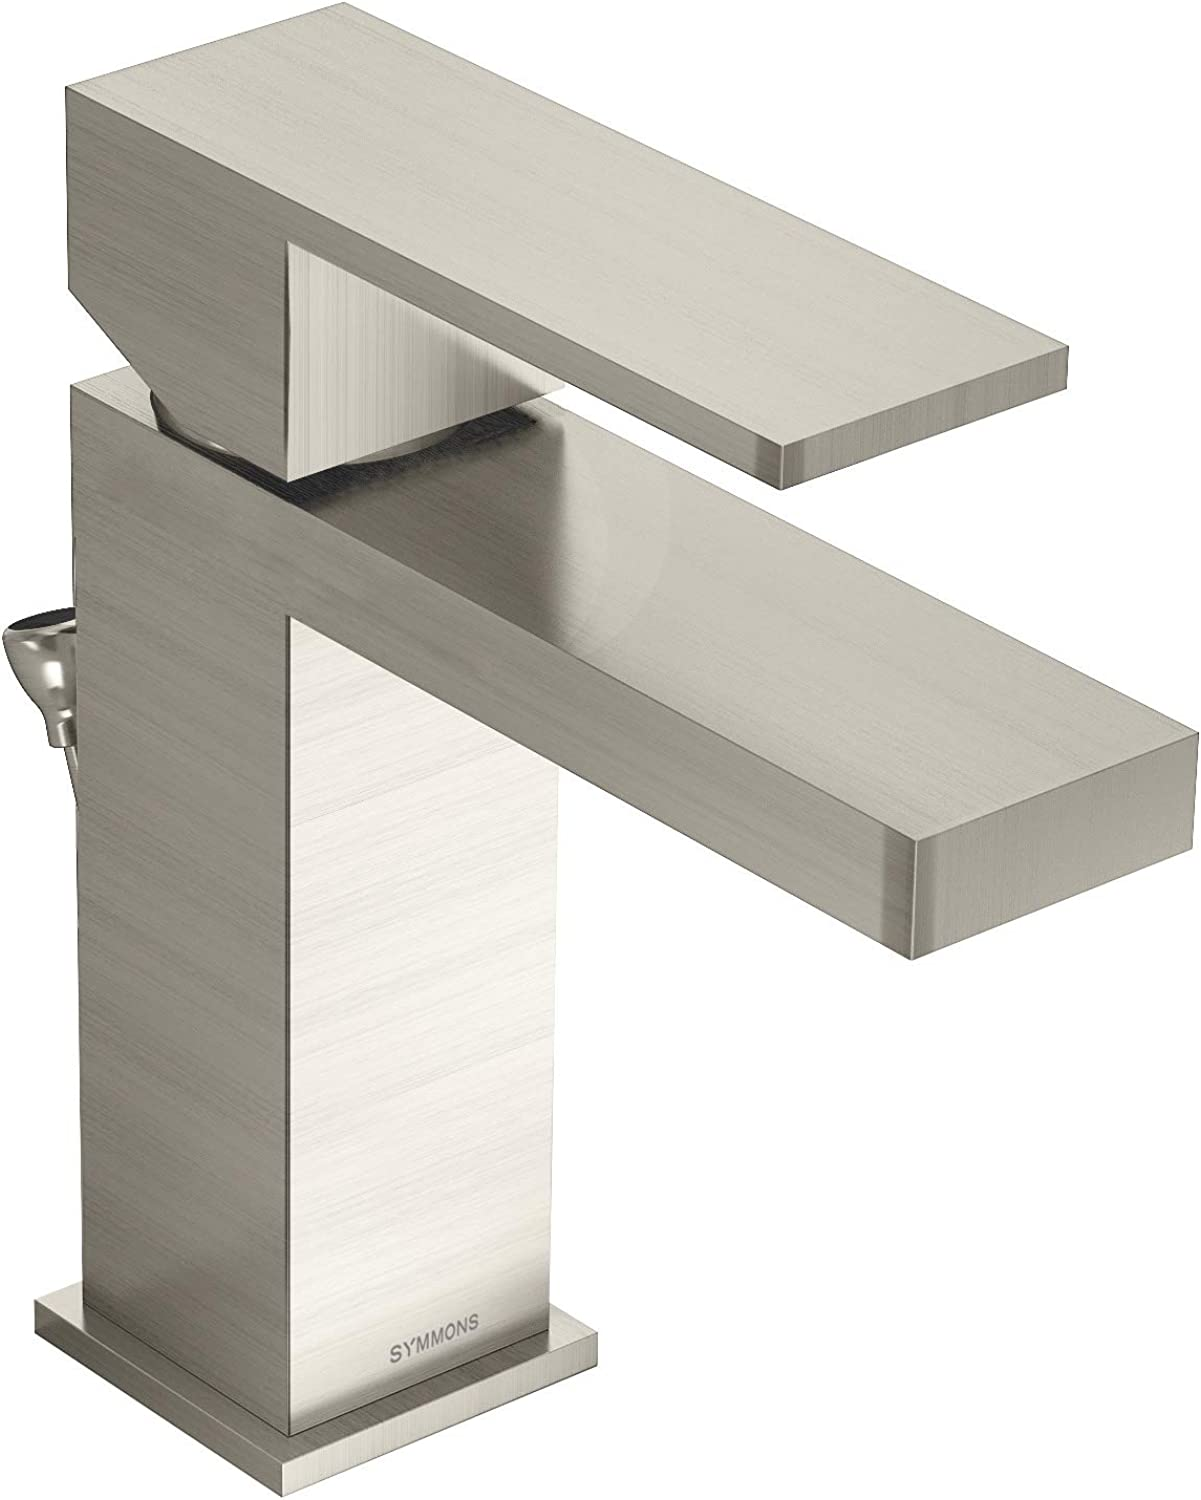 Symmons SLS-3612-STN-1.0 Duro Bathroom Faucet, 1.0 GPM Flow Rate, Satin Nickel